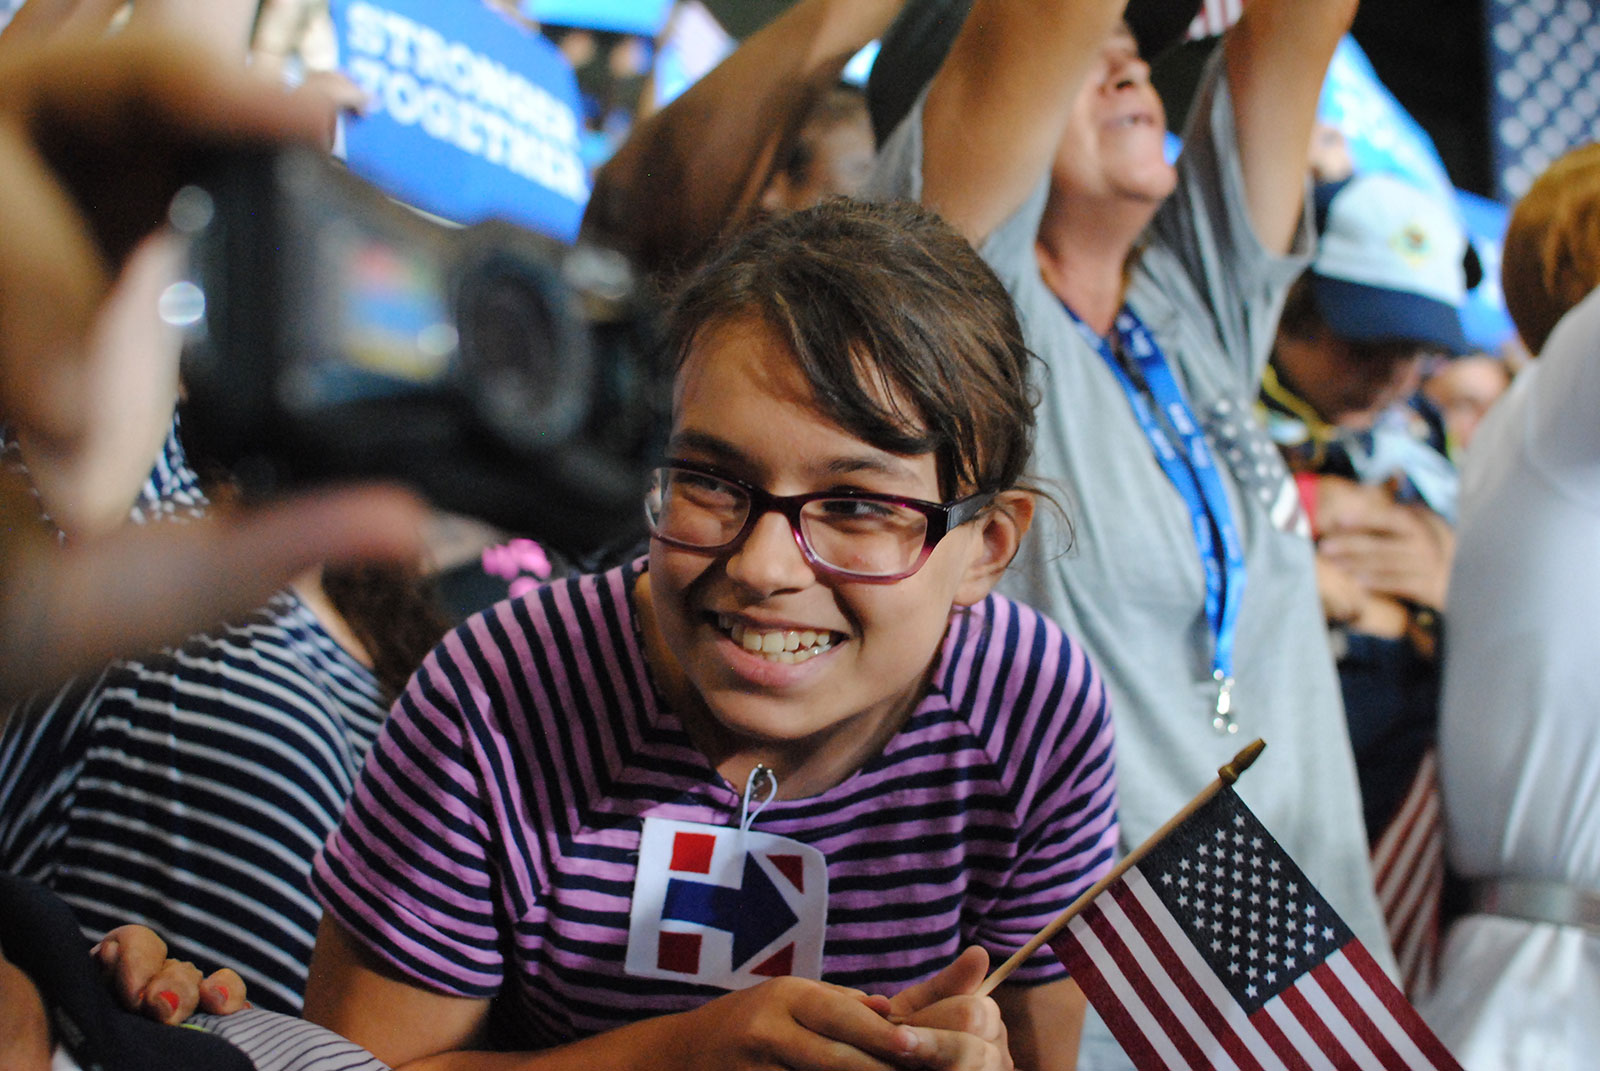 Stephen Cummings, Excited to see Hillary Clinton in Tampa, 2016